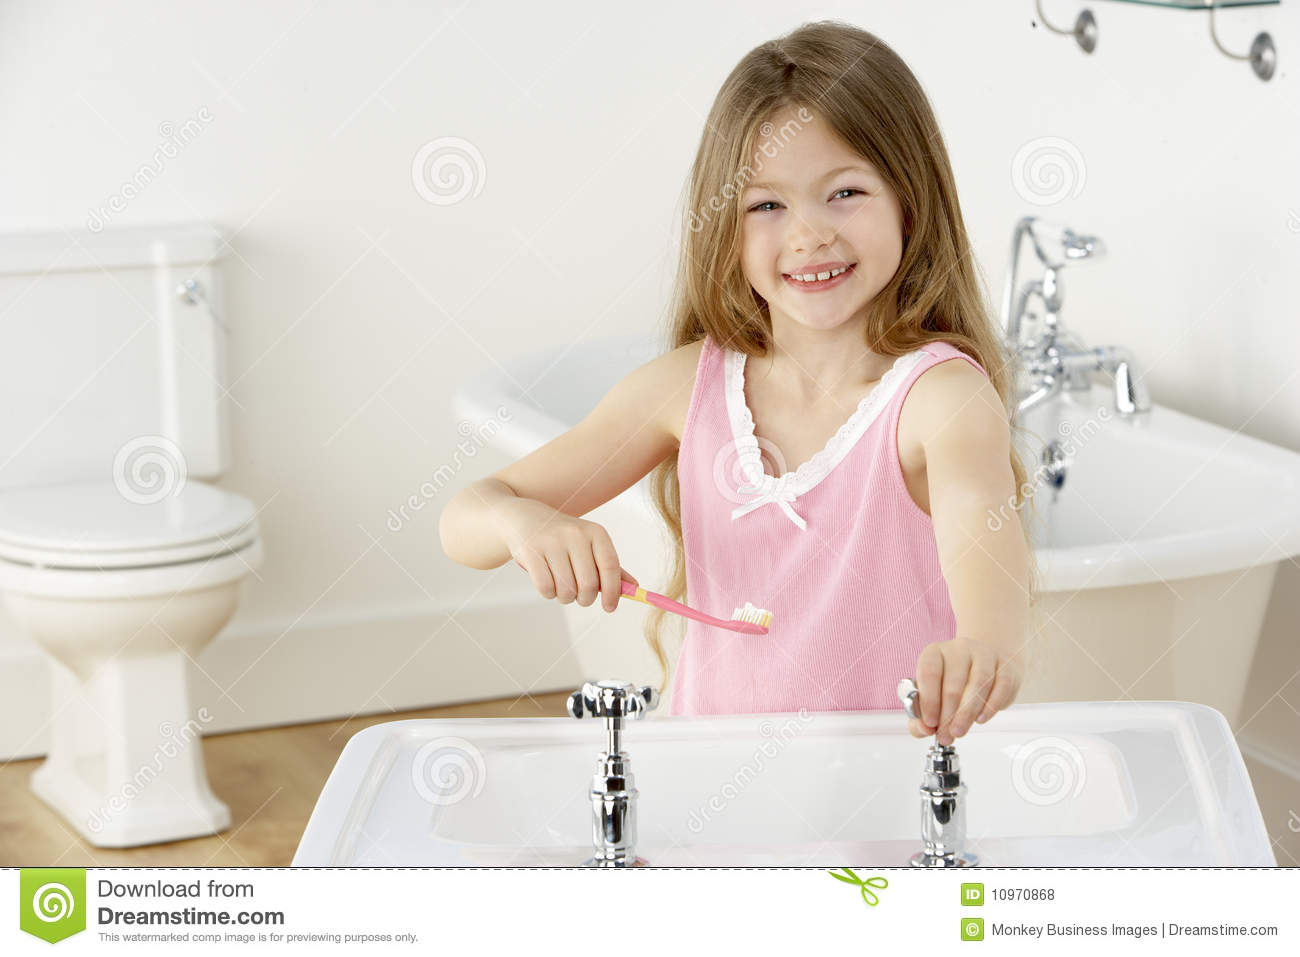 Young Girl Brushing Teeth At Sink Royalty Free Stock